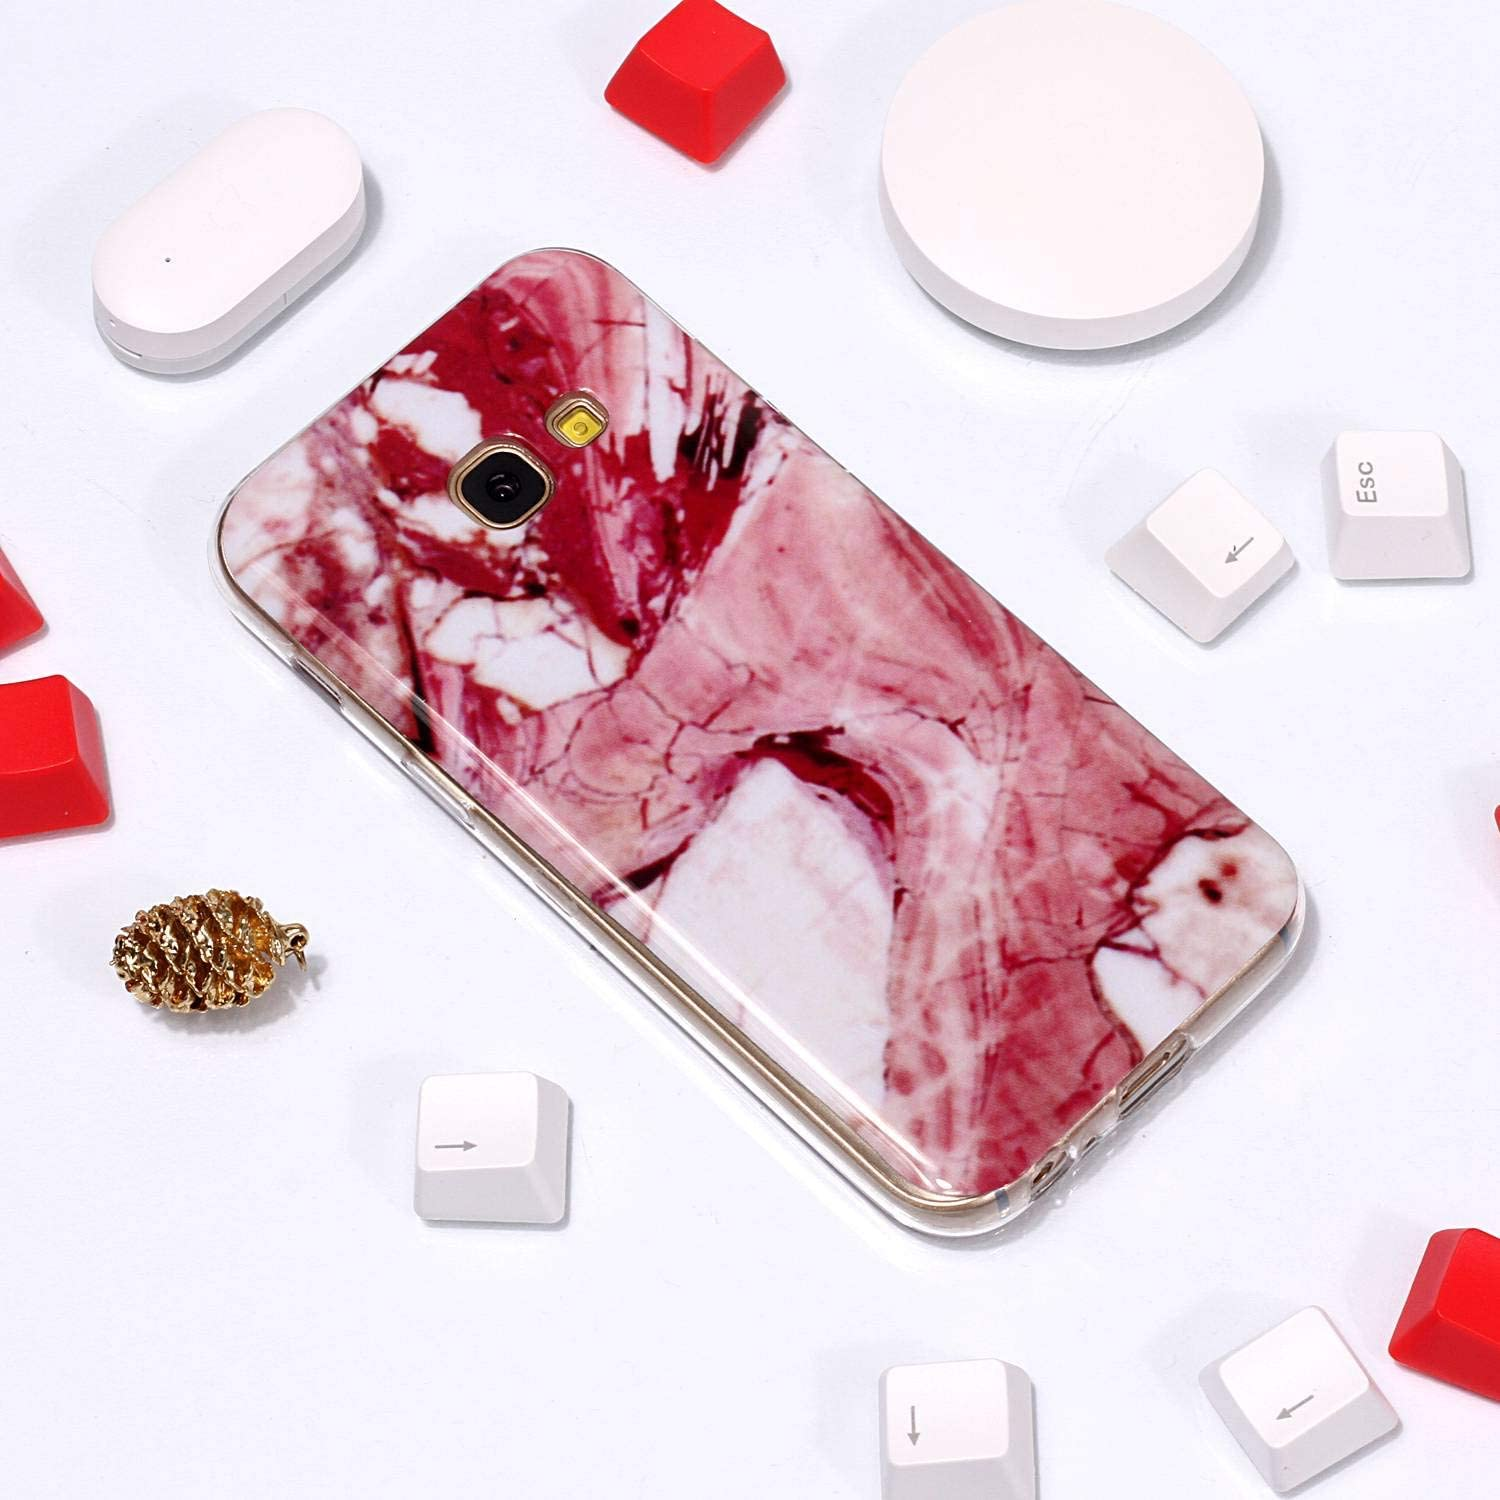 for Samsung Galaxy A5 2017 Marble Case and Screen Protector,Unique Pattern Design Ultra Thin Slim Fit Soft Silicone Phone Case Bumper,QFFUN Shockproof Anti-Scratch Protective Back Cover Brown